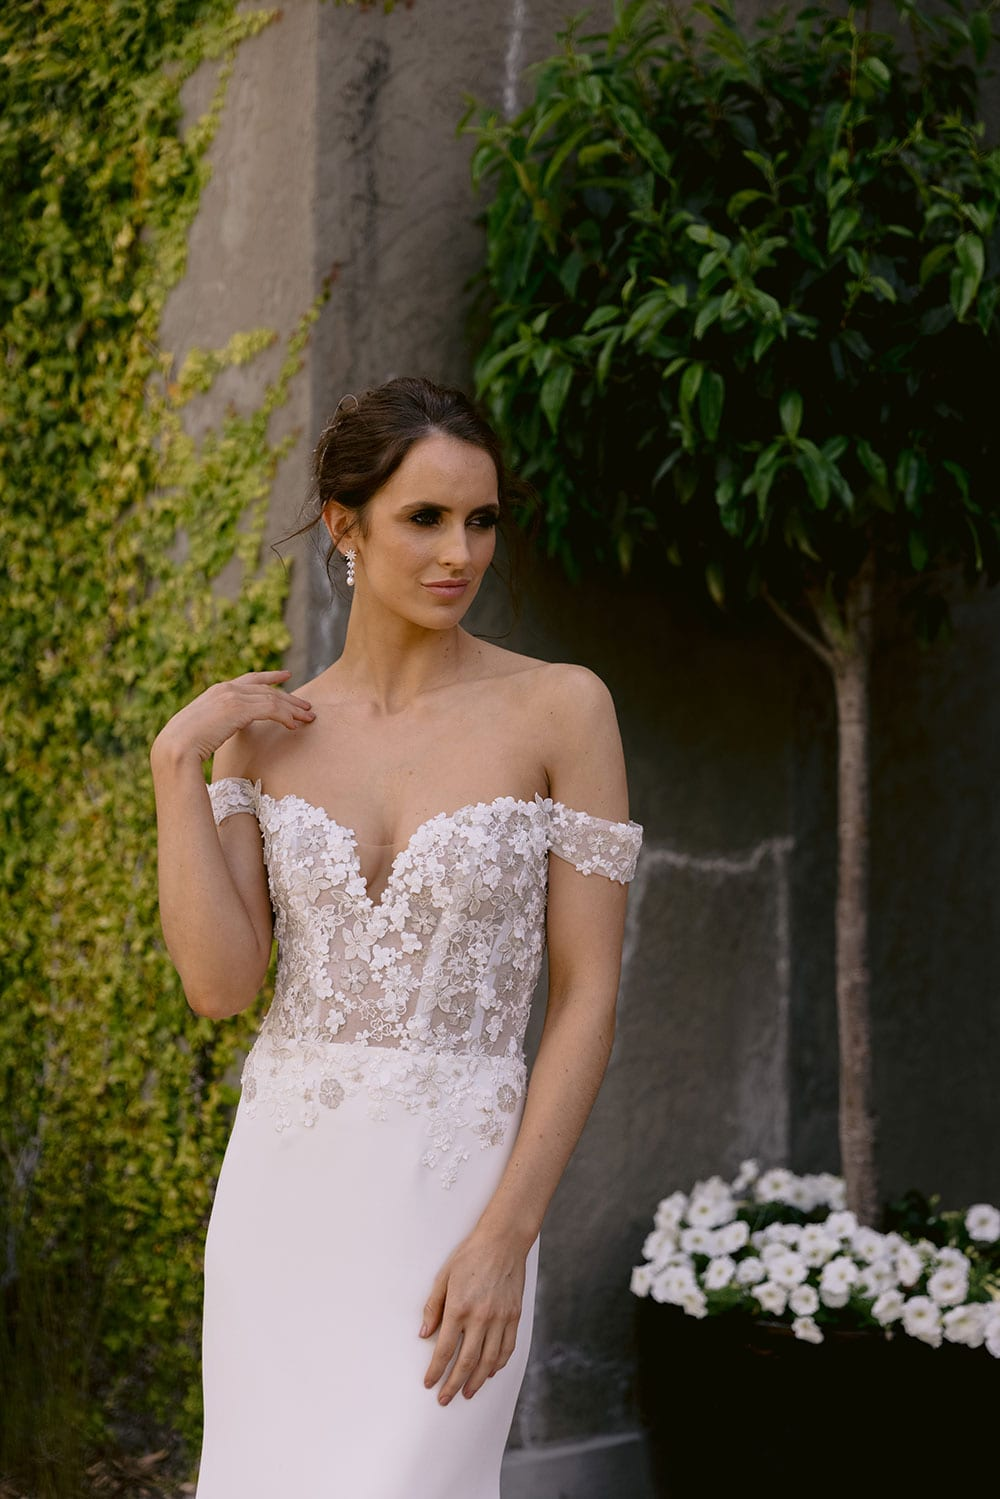 Chloe Wedding gown from Vinka Design - Wedding gown with 3D embellished platinum and ivory flower lace, complemented by stunning off-shoulder straps. A semi-sheer bodice trails into a gorgeous stretch crepe skirt that hugs the figure in all the right places. Model wearing gown in gardens detail of low V front of dress.